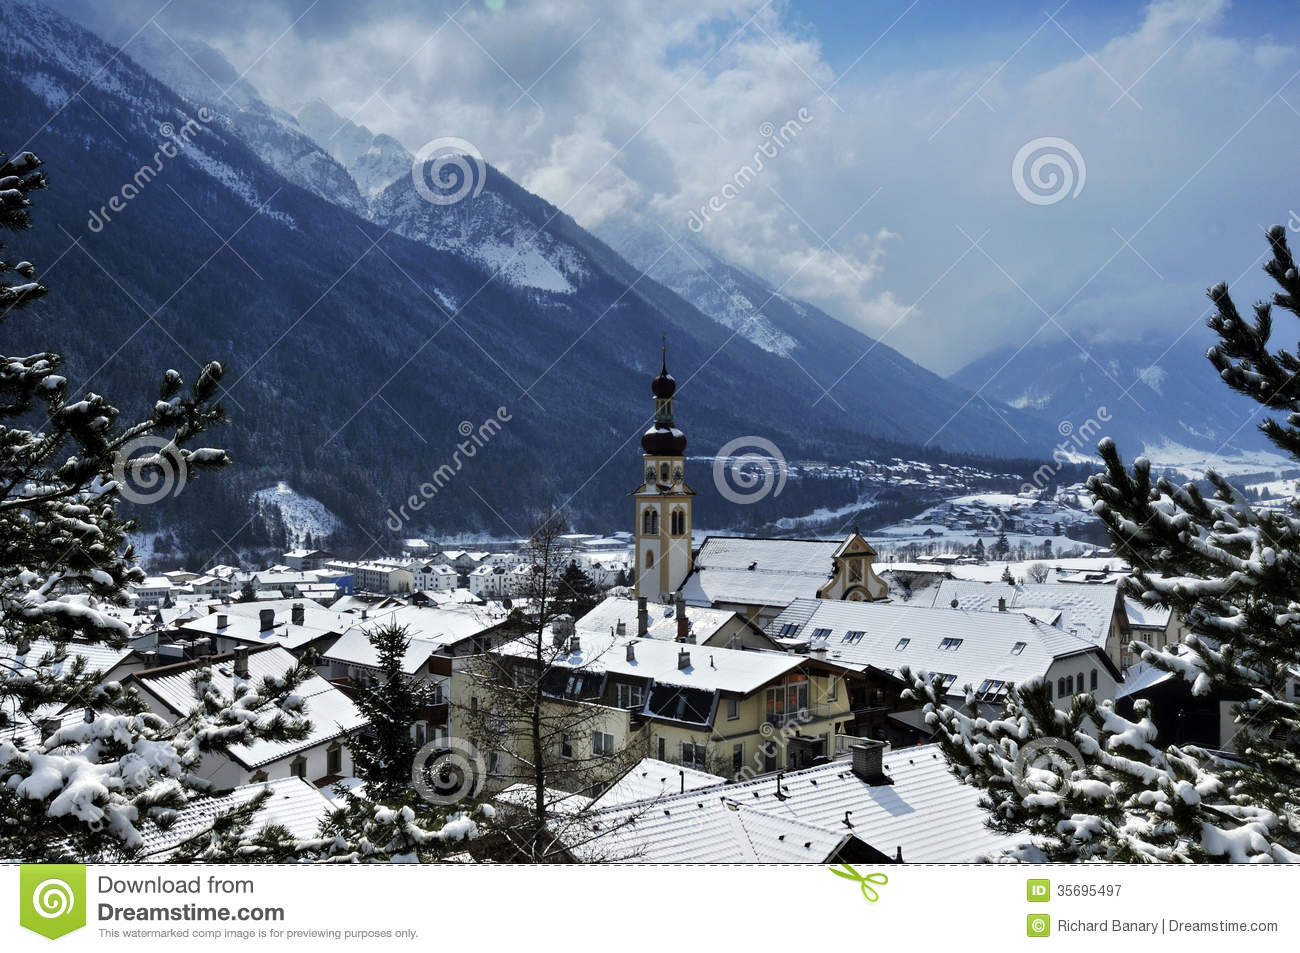 Fulpmes Austria  city photos gallery : Winter scenery in Fulpmes village in Stubaital in Tyrol Austria.